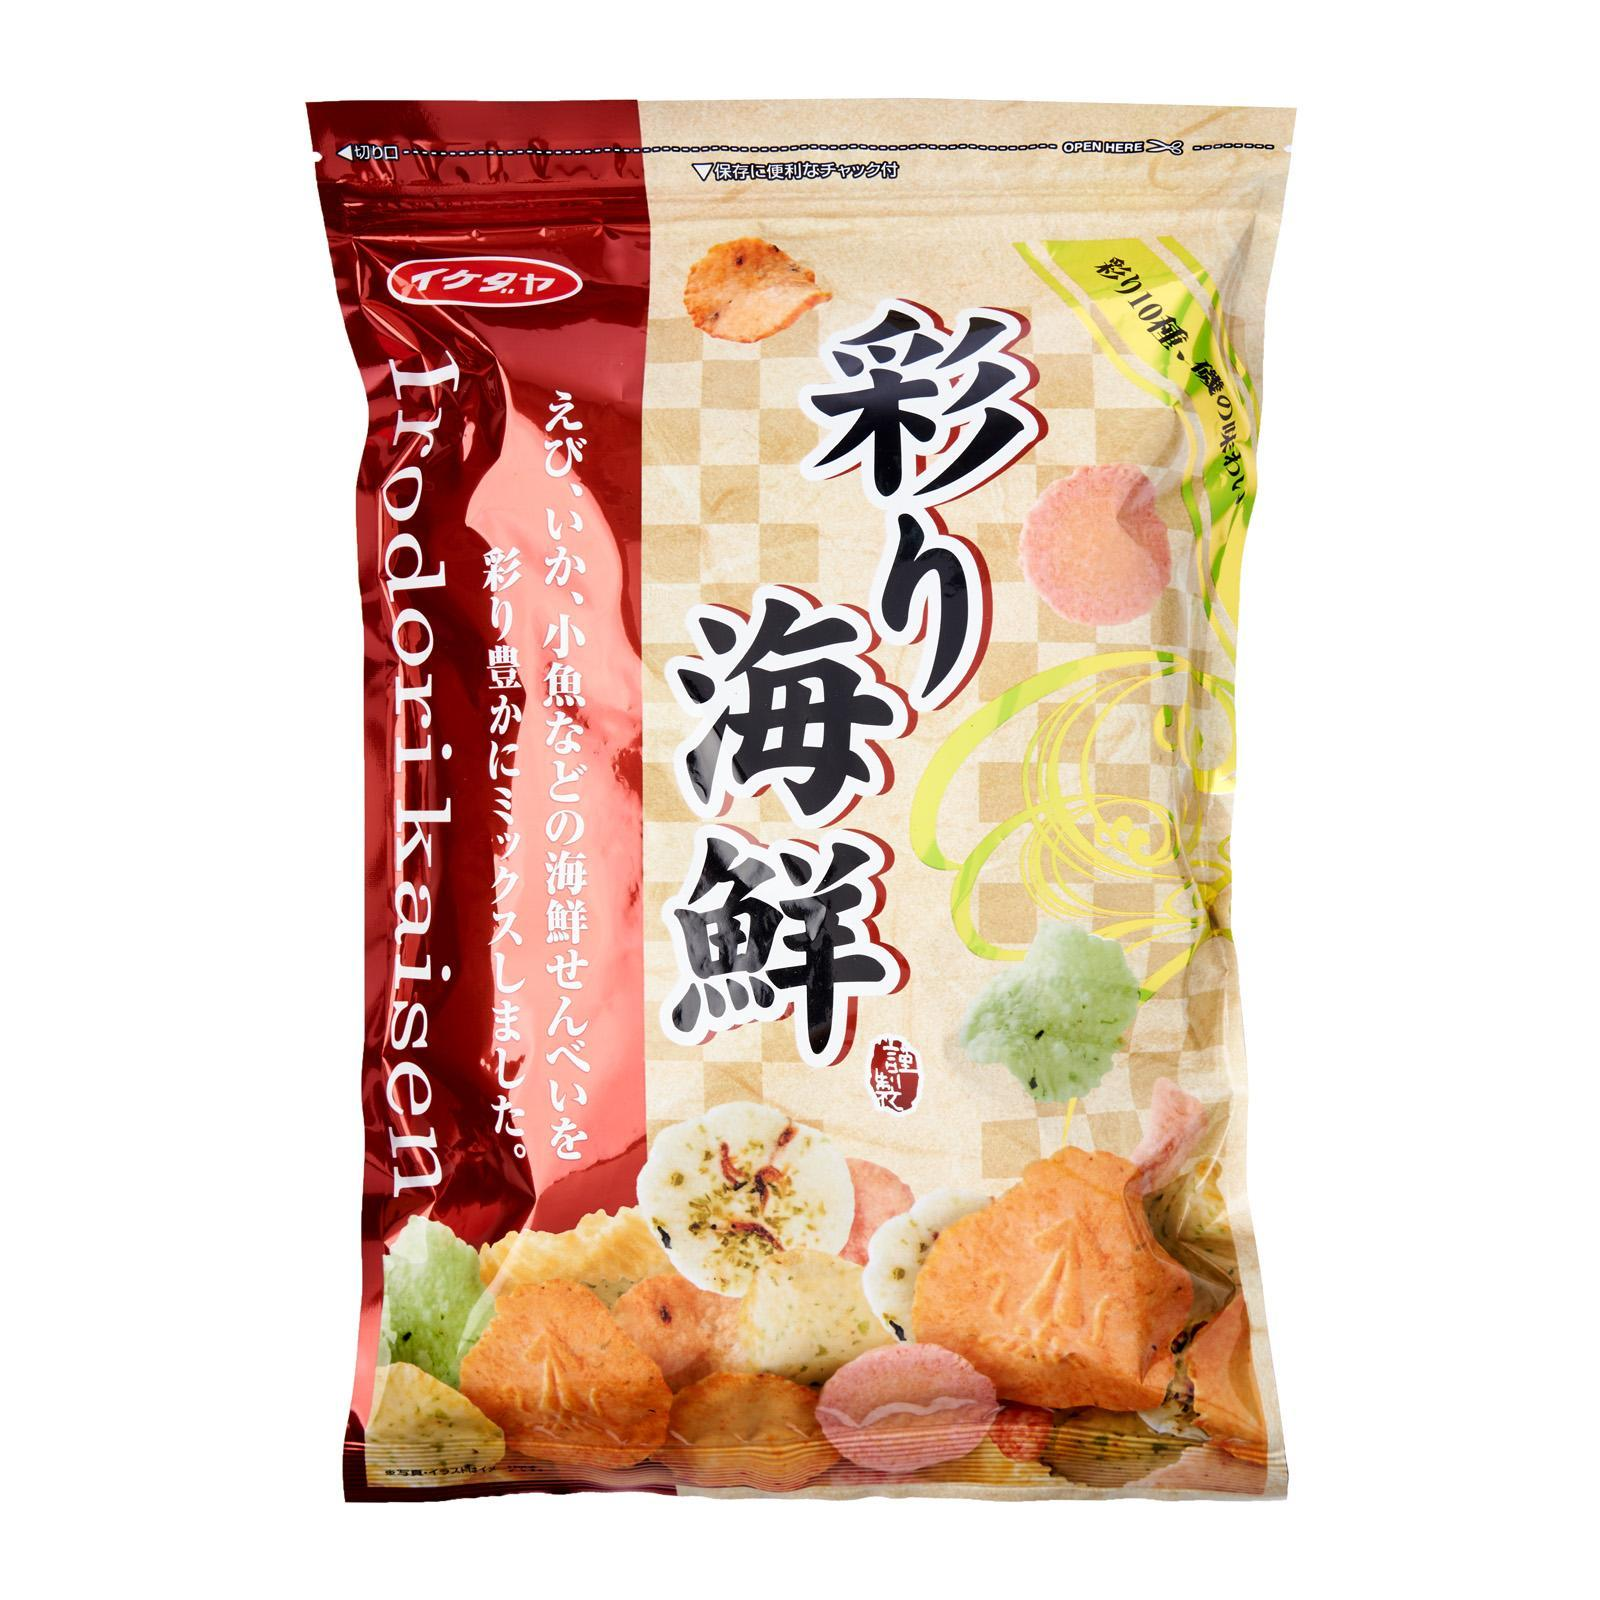 Ikedaya Seafood Rice Crackers